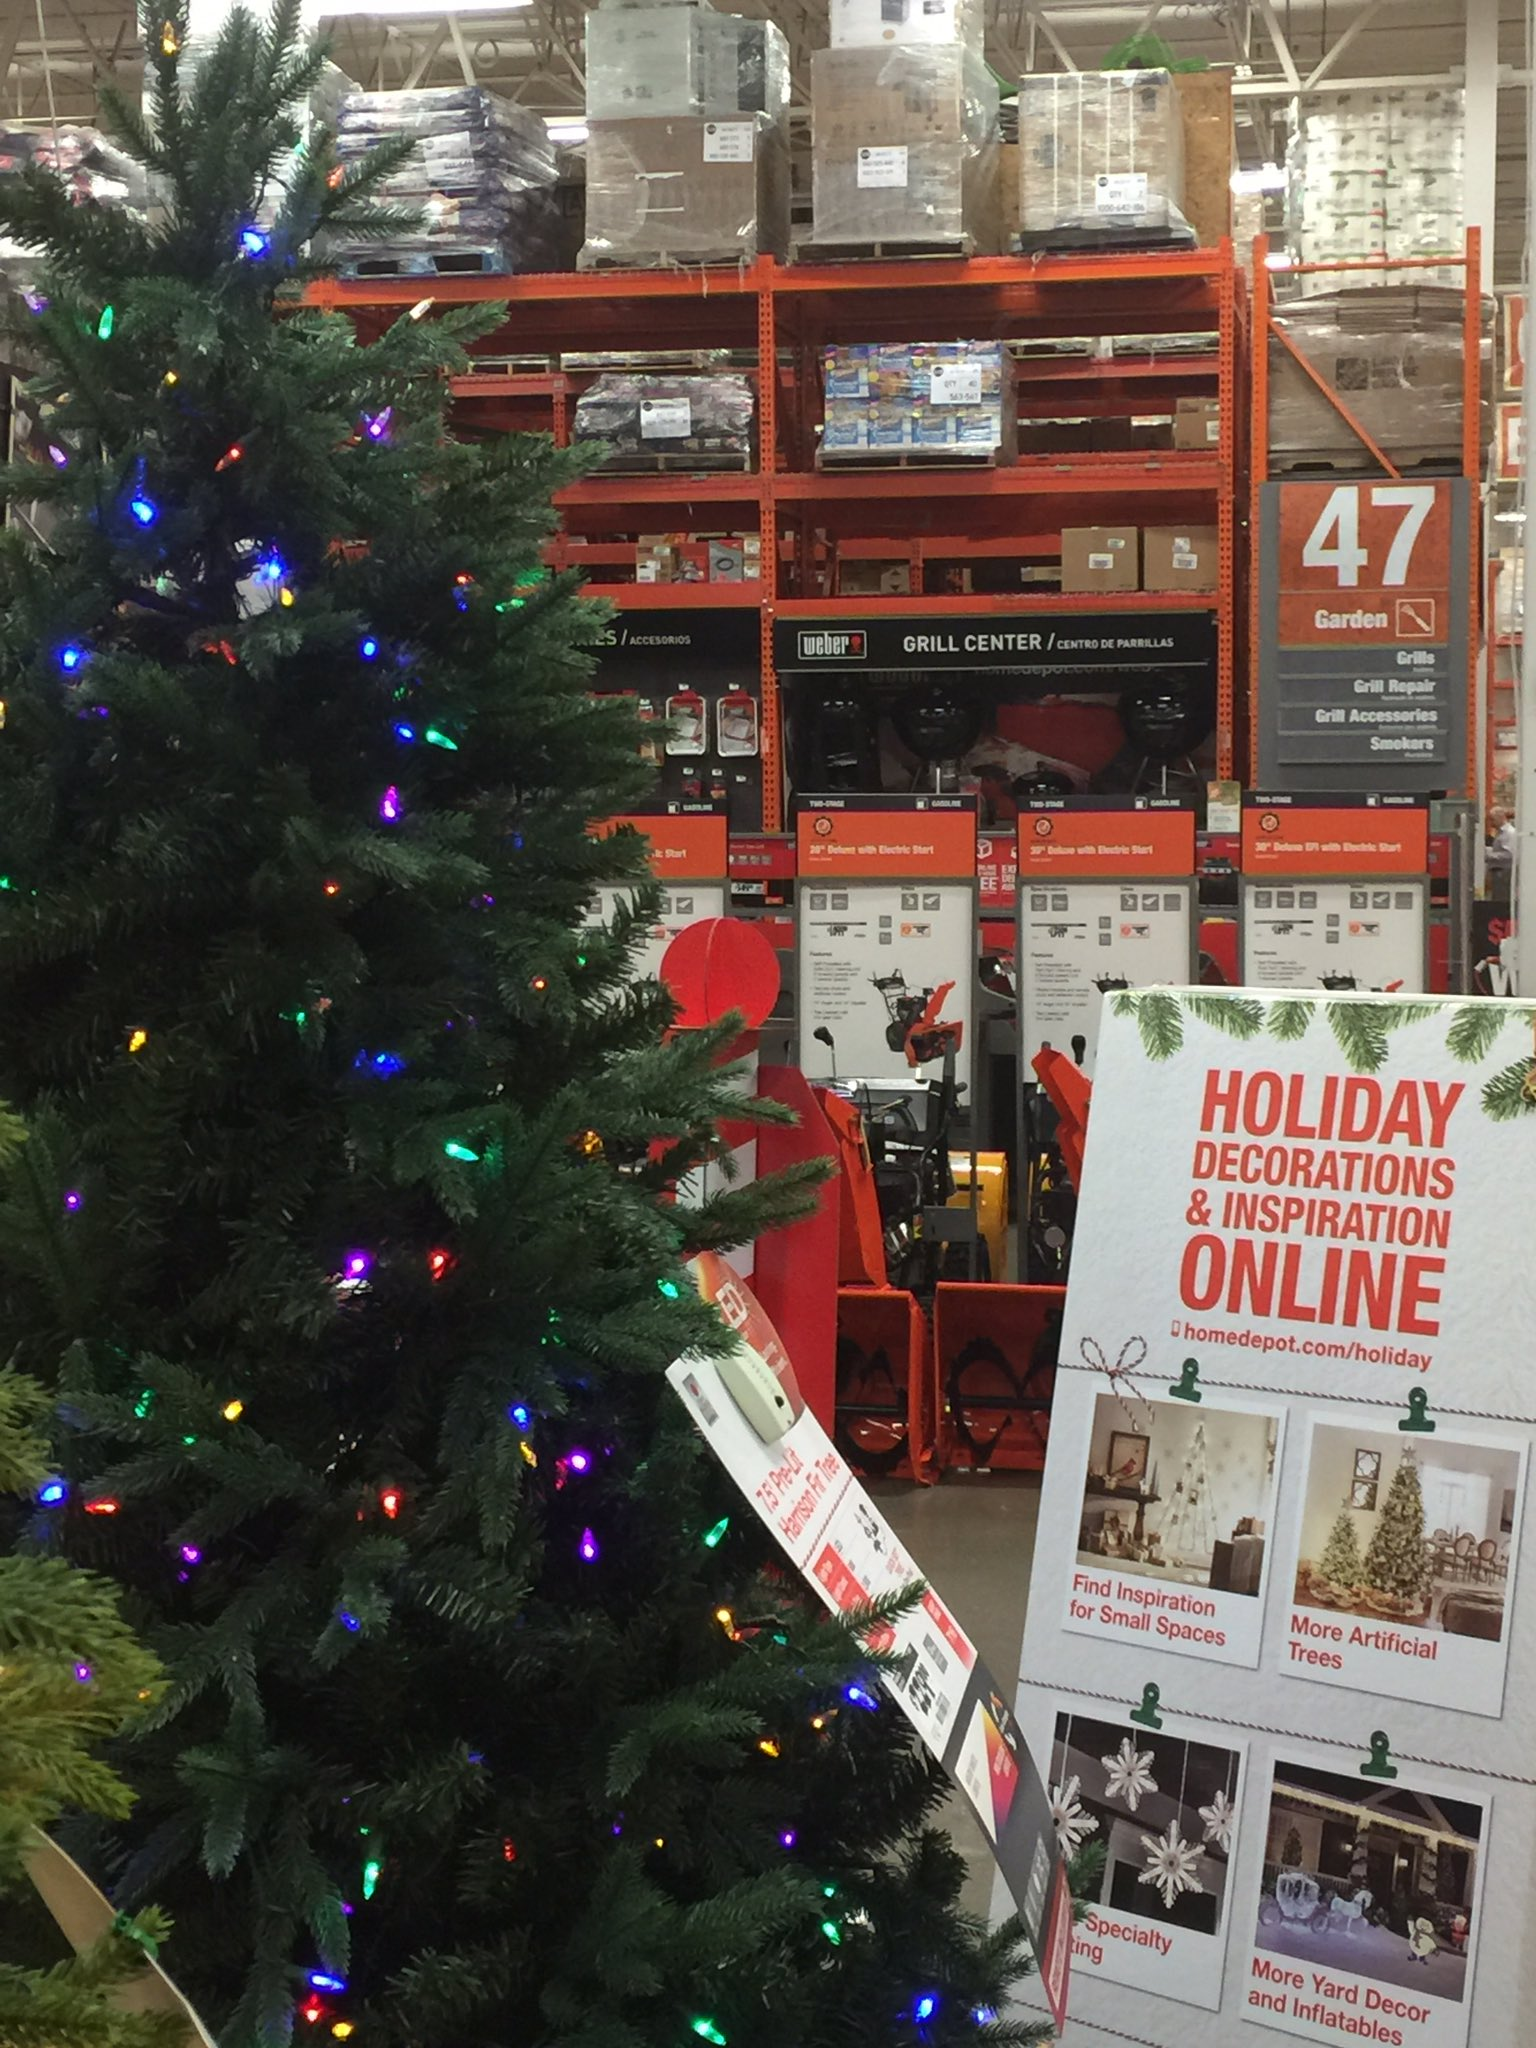 francis rose on twitter it seems counterintuitive to have the christmas trees so close to the grill center homedepot httpstcowouj7u3zbx